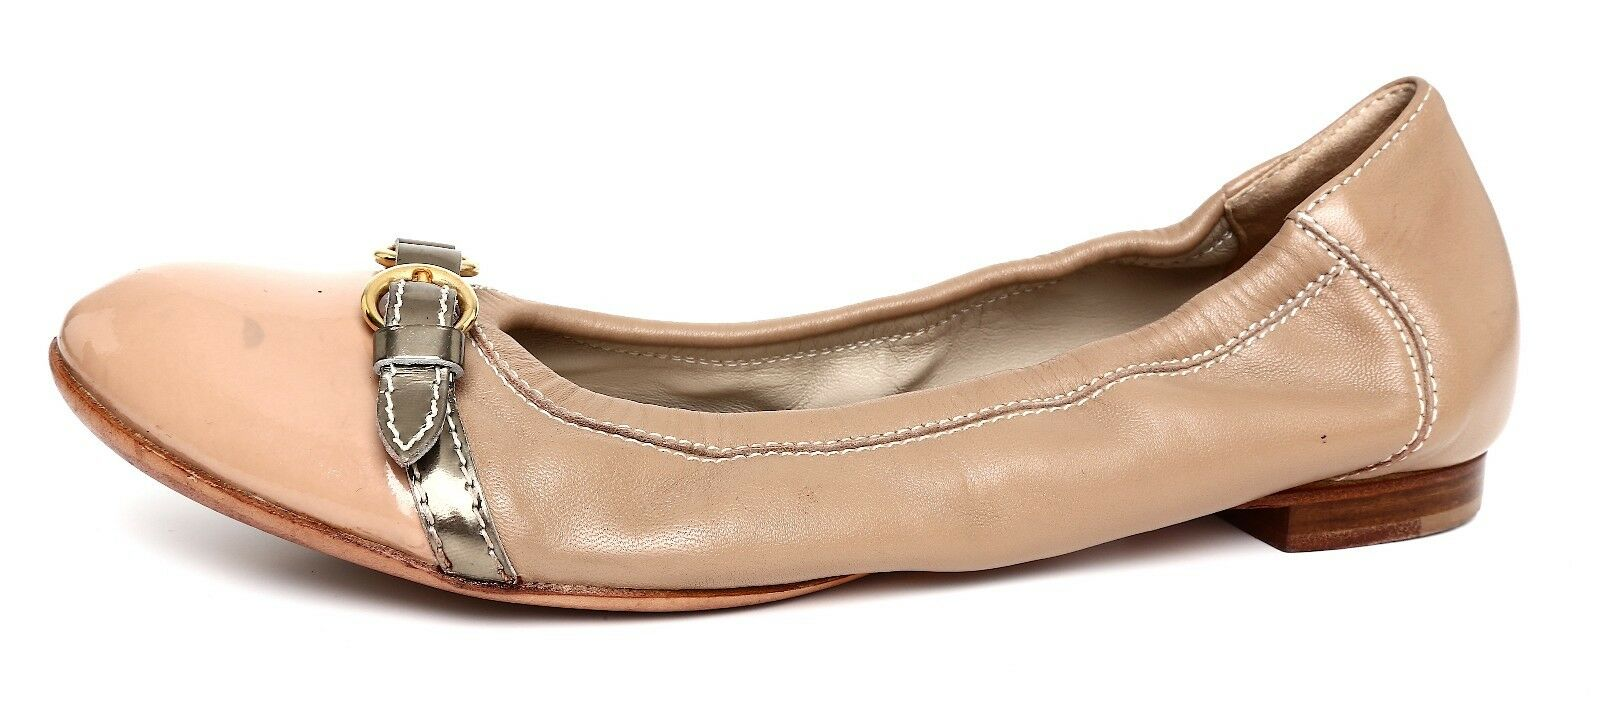 Attilio Giusti Leombruni Women's Slip On Leather Beige Flats Sz 38 EUR 5586